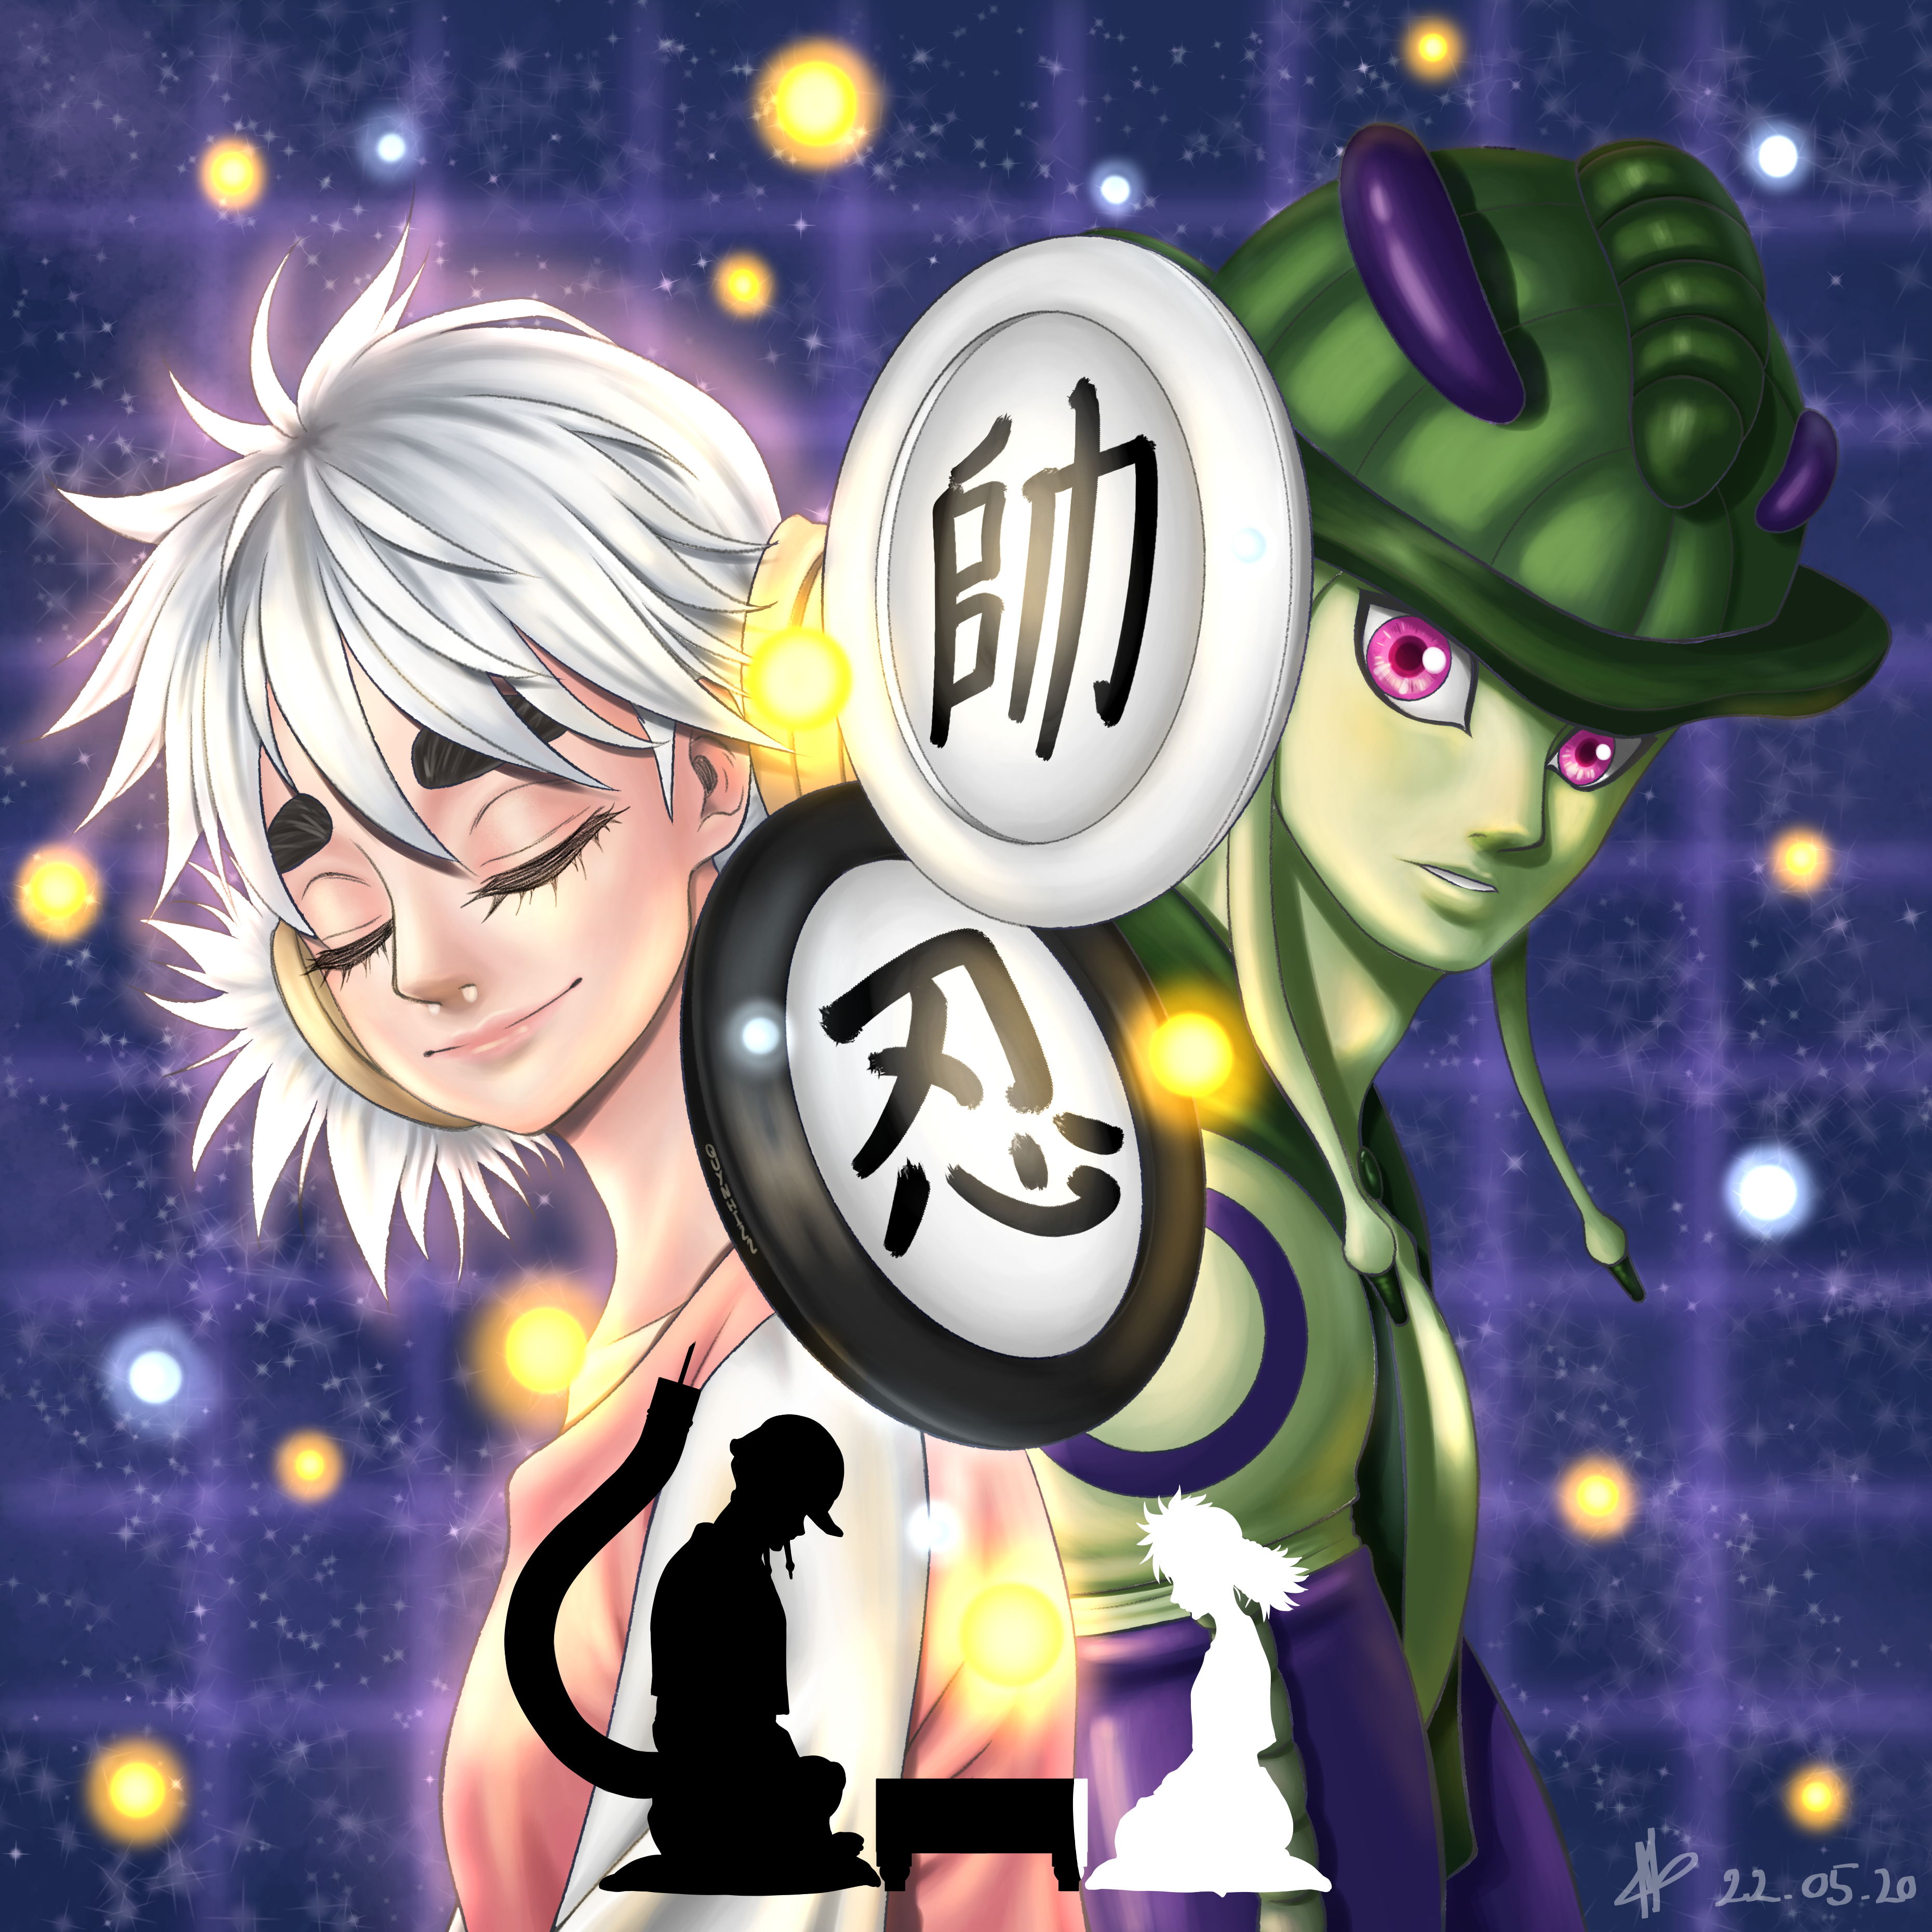 Hxh Marshal X And X Shinobi Quynhi22 Illustrations Art Street Check out inspiring examples of gungi artwork on deviantart, and get inspired by our community of talented artists. medibang